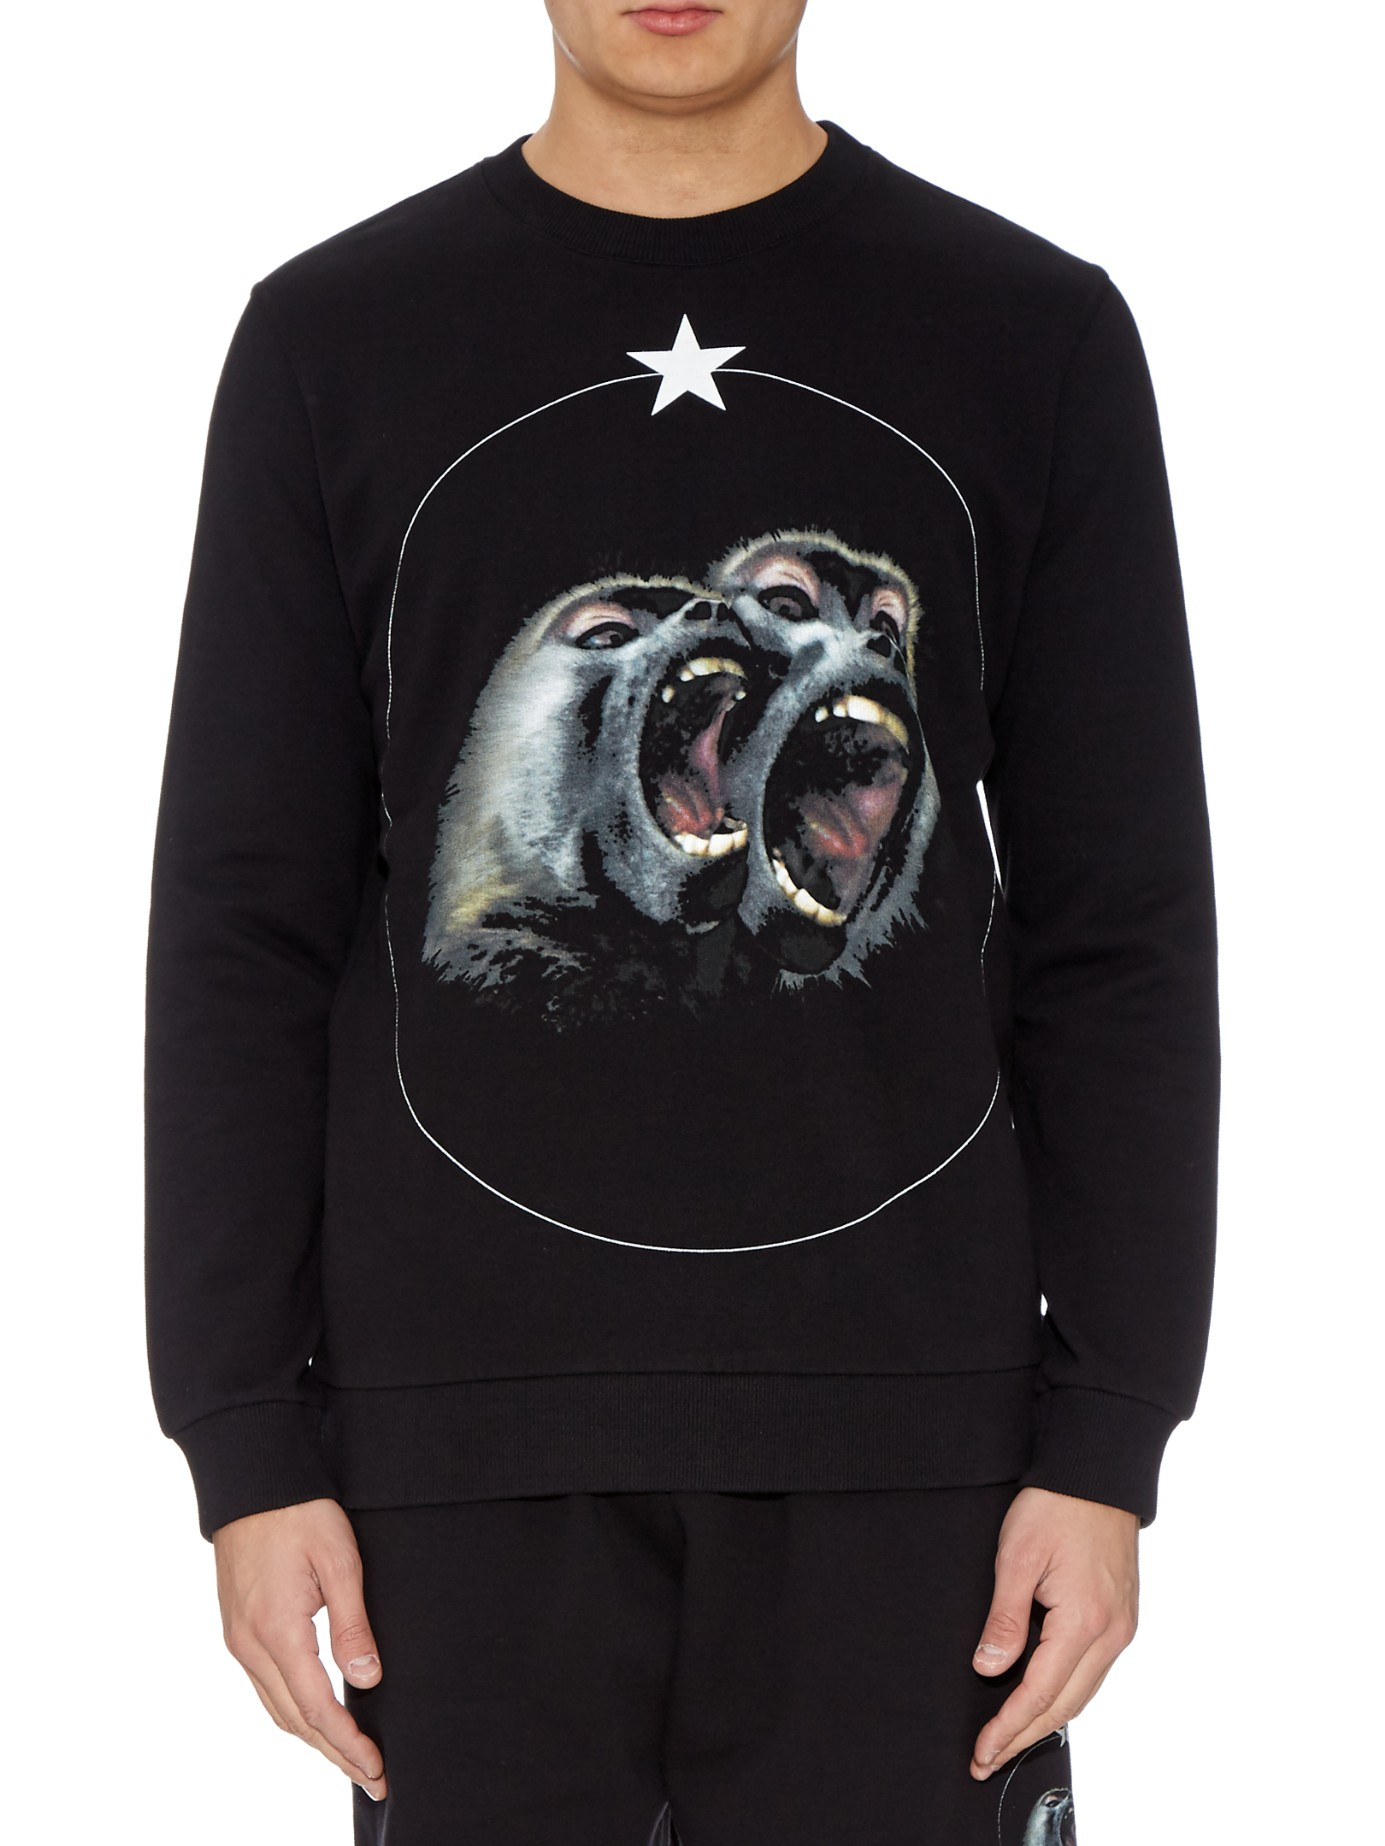 givenchy-black-screaming-monkey-print-cotton-sweater-product-3-556682230-normal.jpg